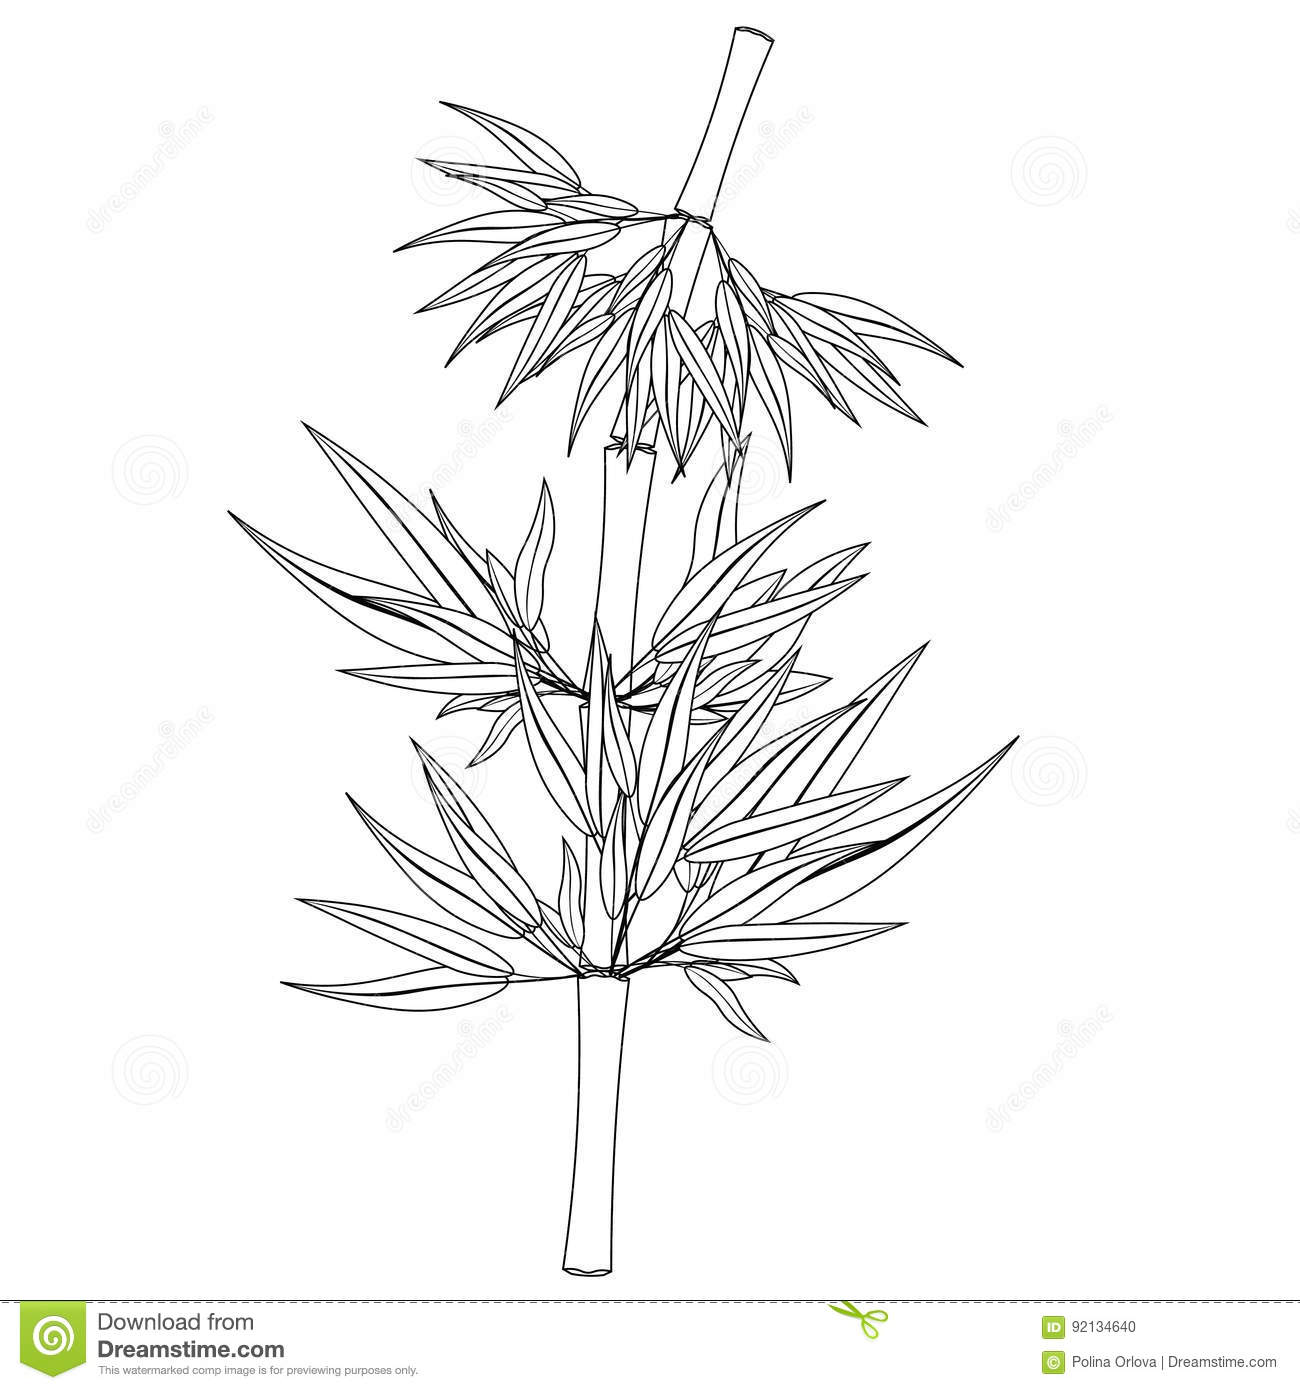 Picture of: Coloring Bamboo Tree Tropical China Japan Vector Illustration Stock Vector Illustration Of Chinese Drawing 92134640